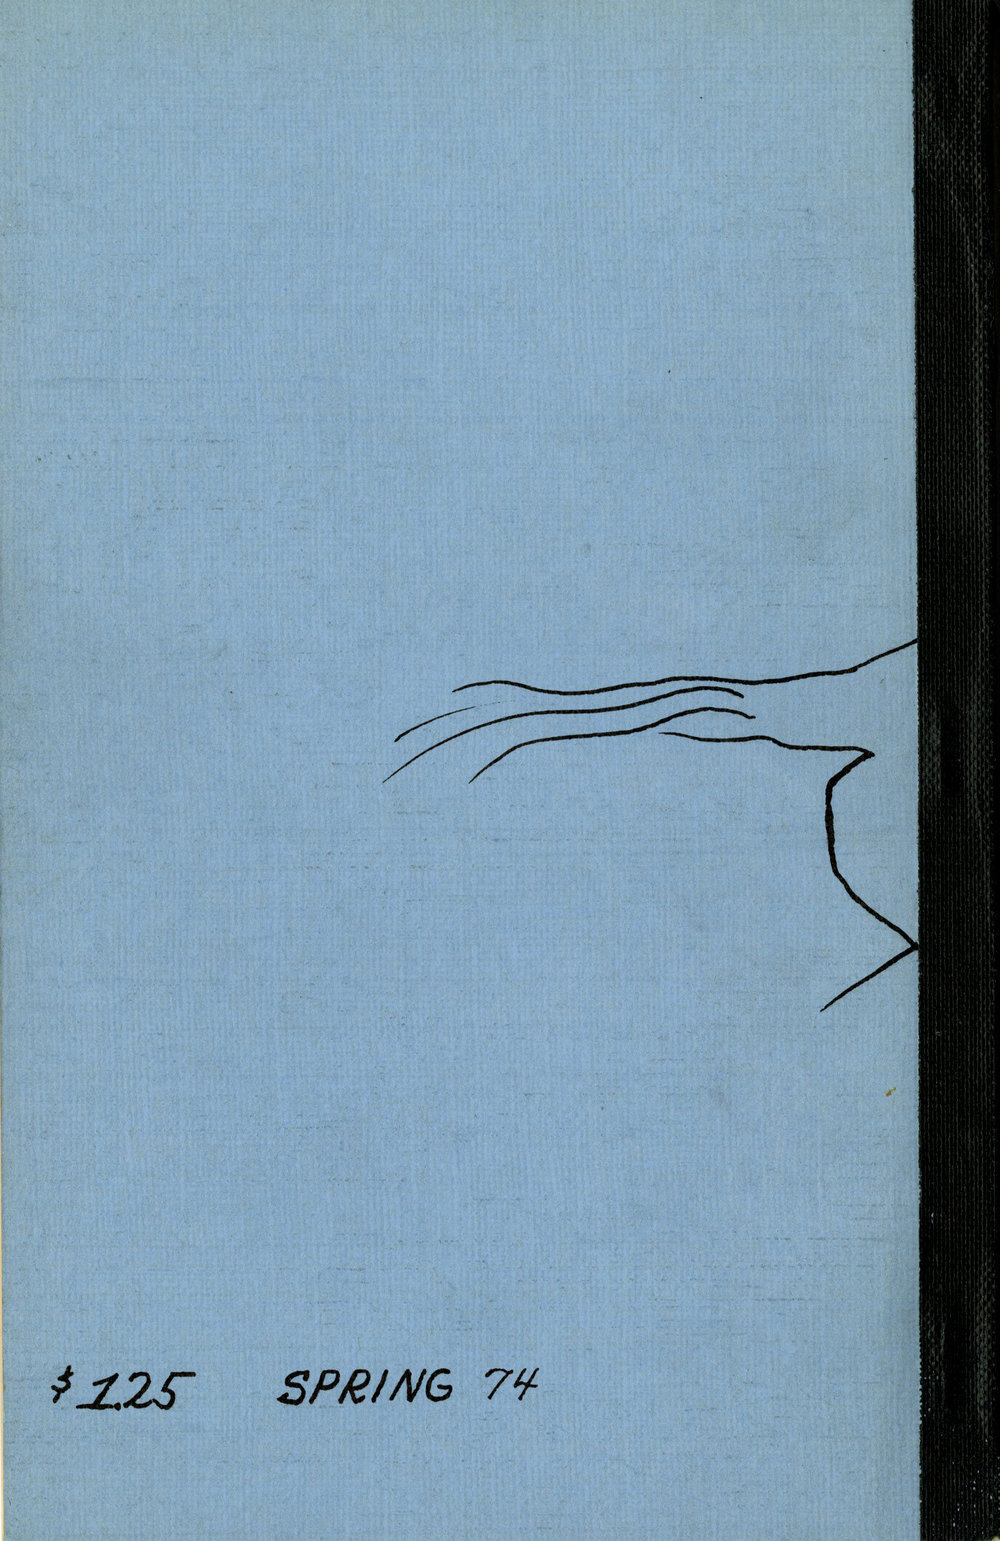 Volume II, Back (1974)